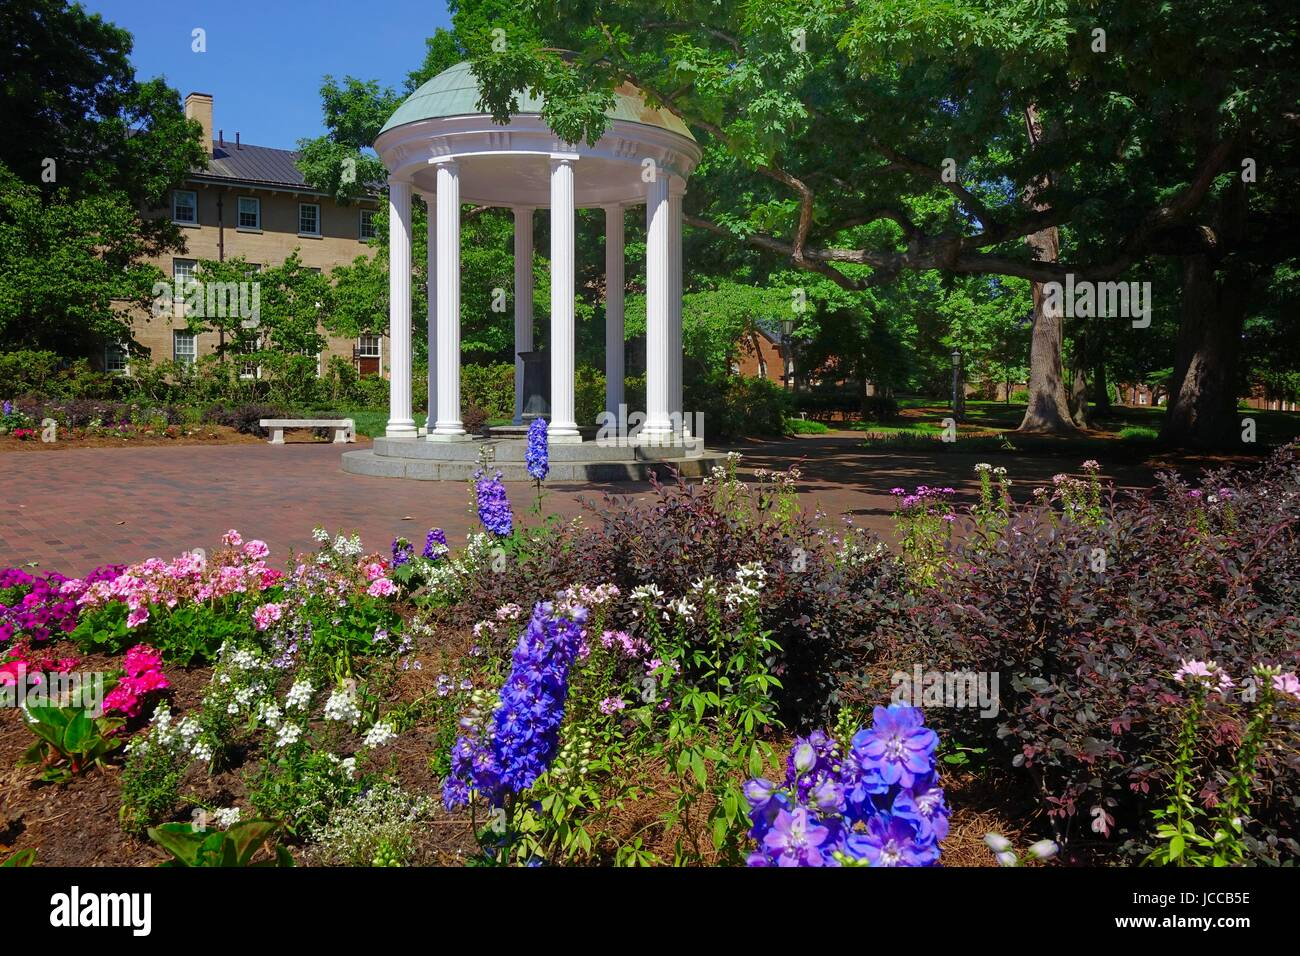 The Old Well, symbol of the Unversity of North Carolina, Chapel Hill, North Carolina. The well is enclosed in a - Stock Image